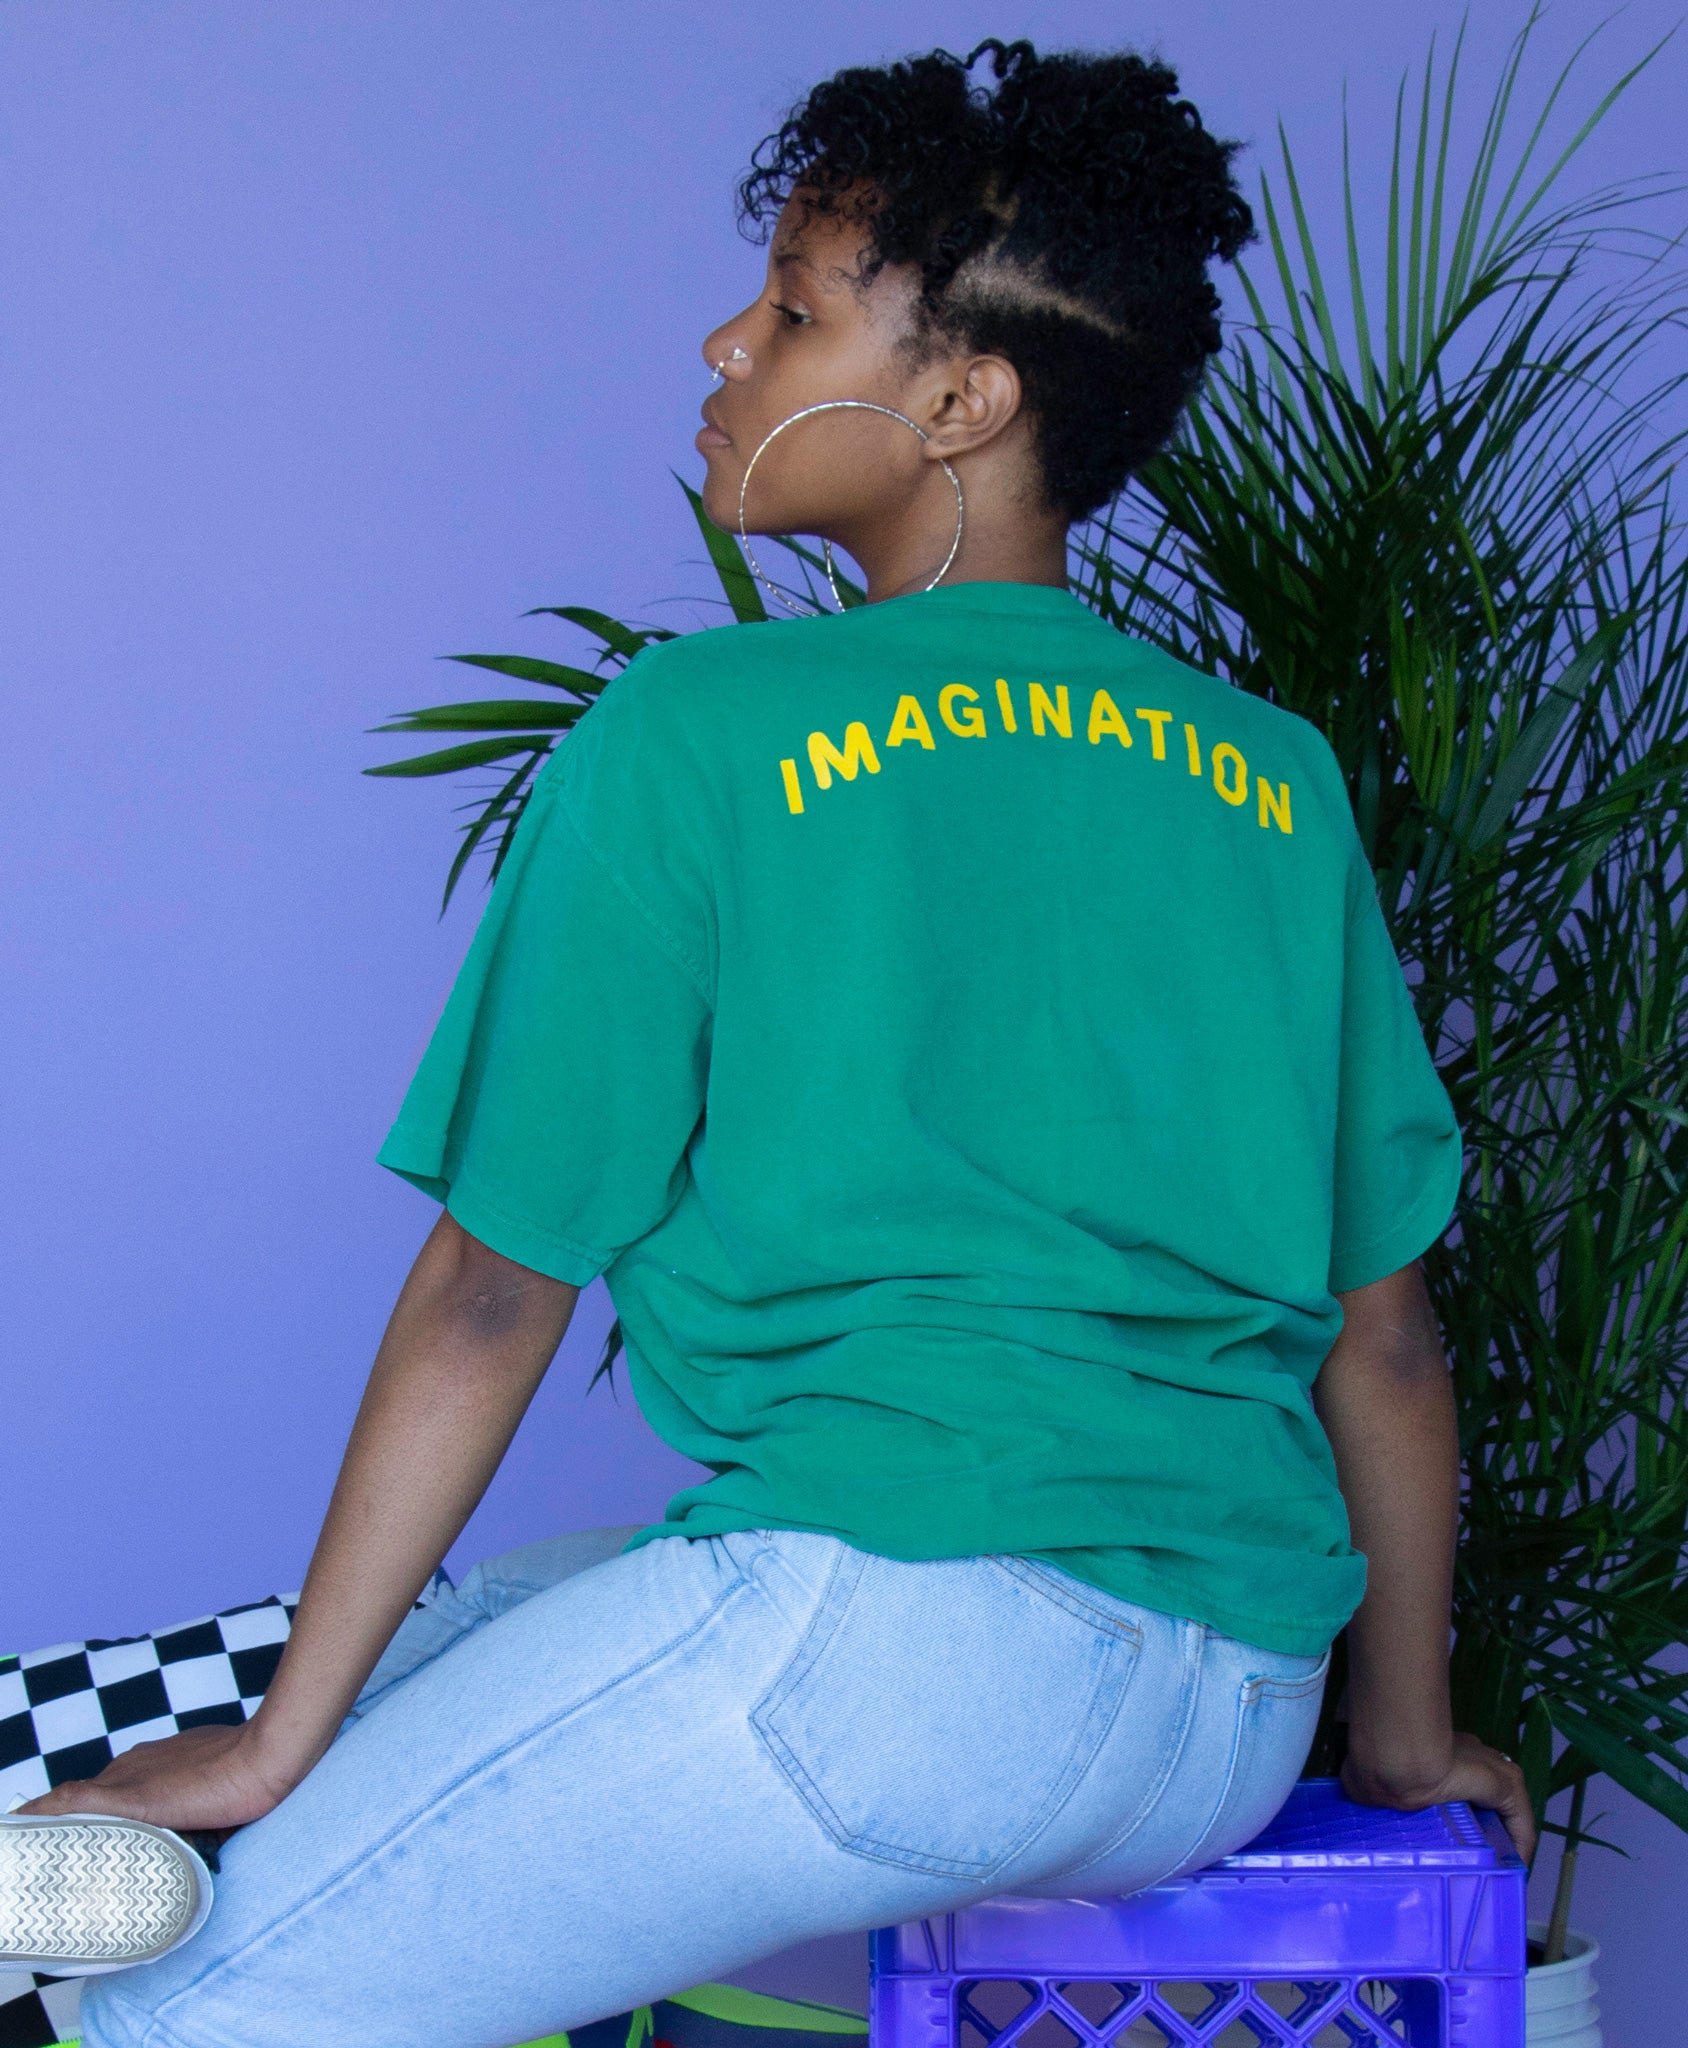 Imagination T-shirt